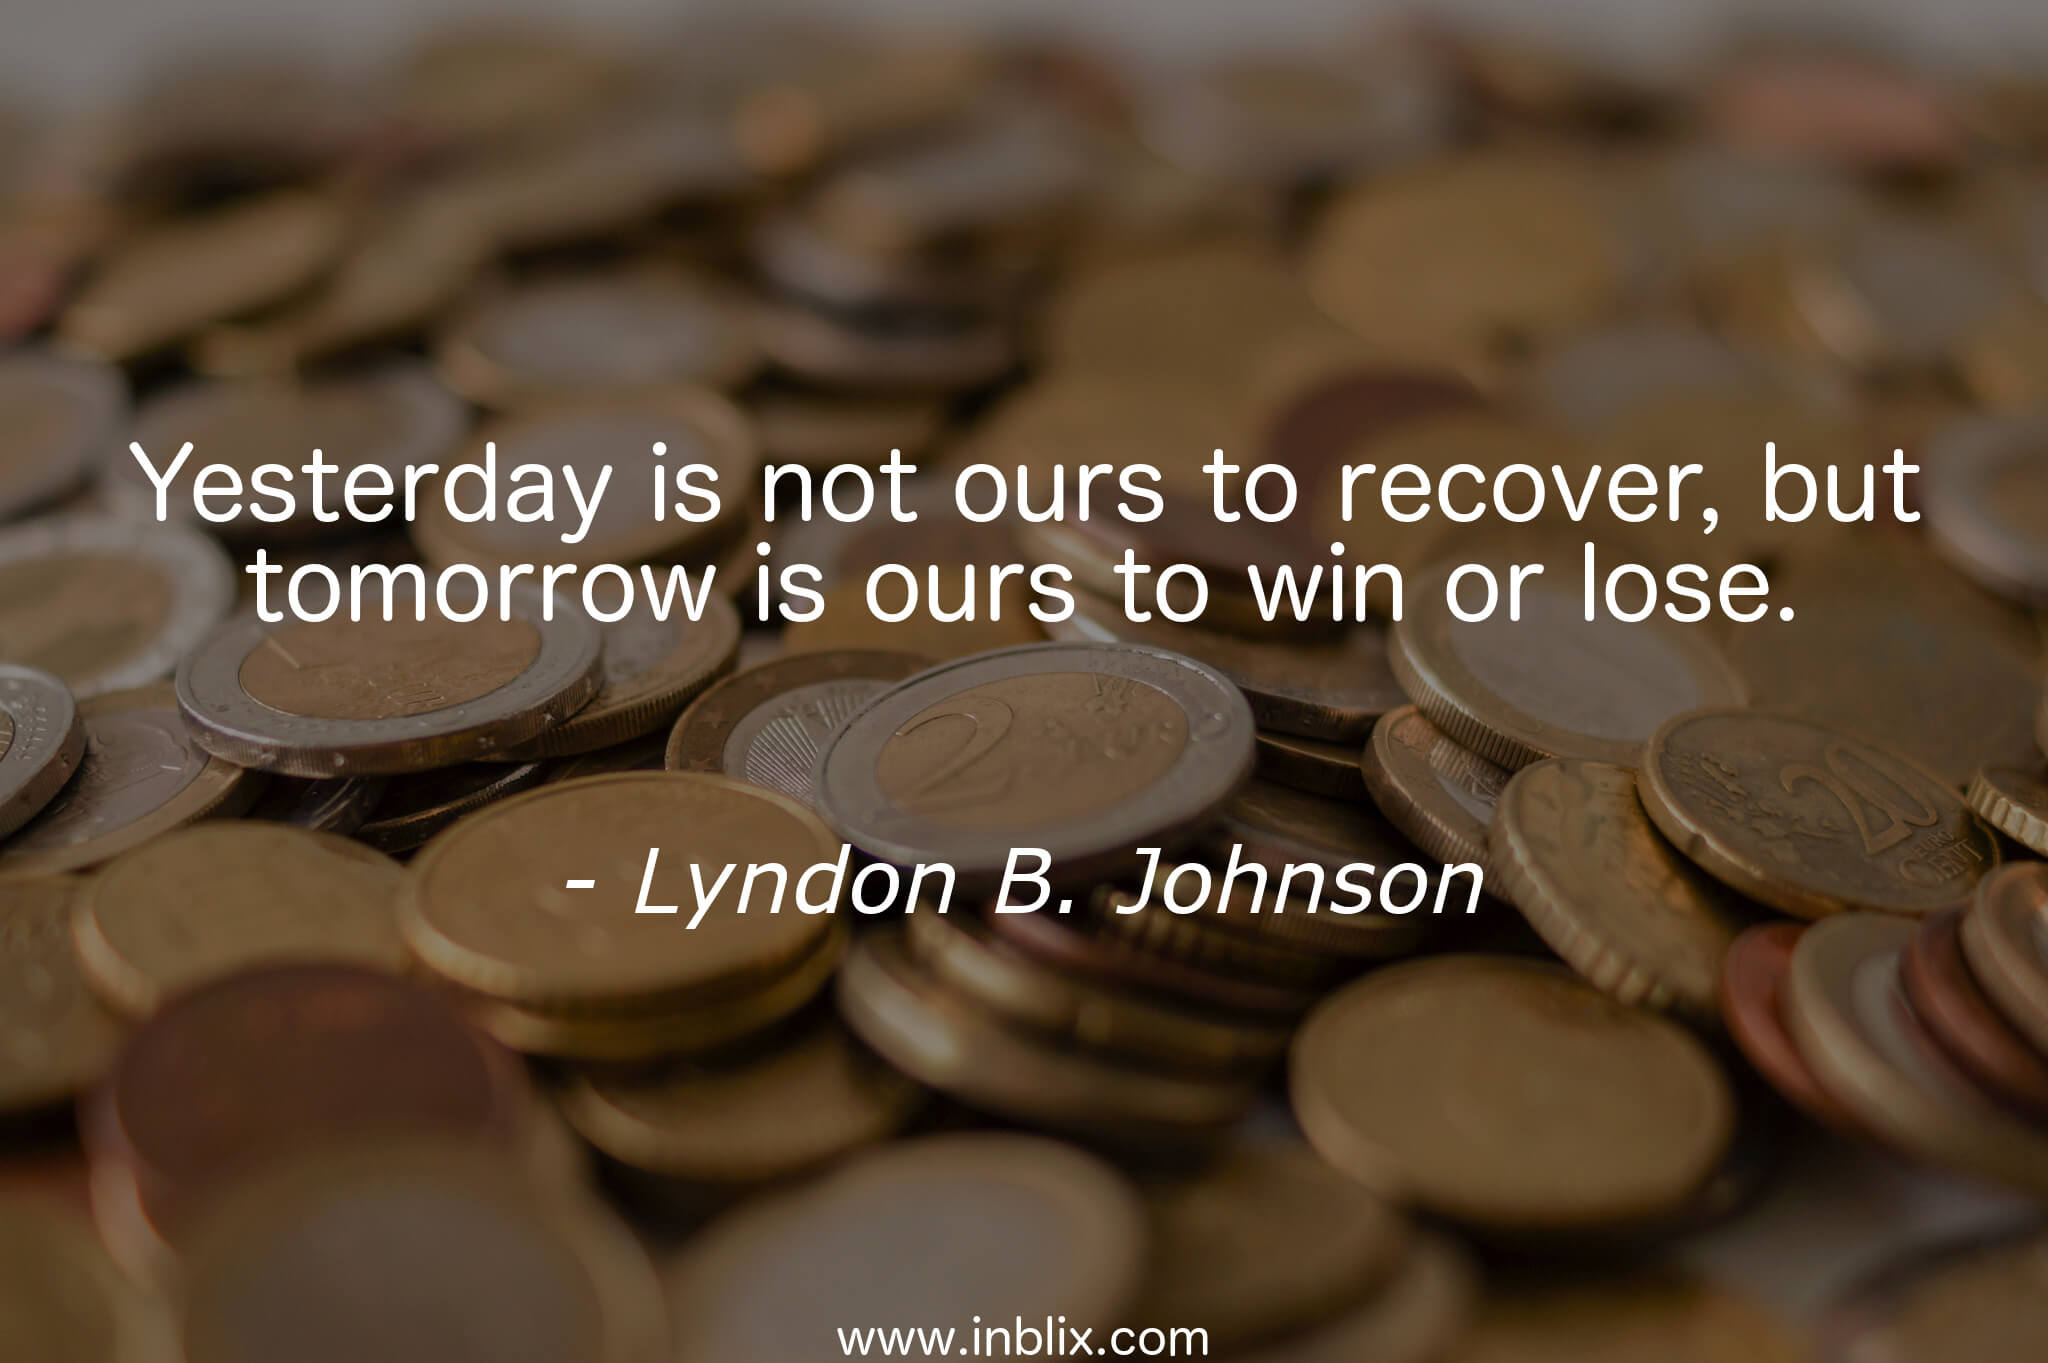 Yesterday is not ours to recover, but tomorrow is ours to win or lose.